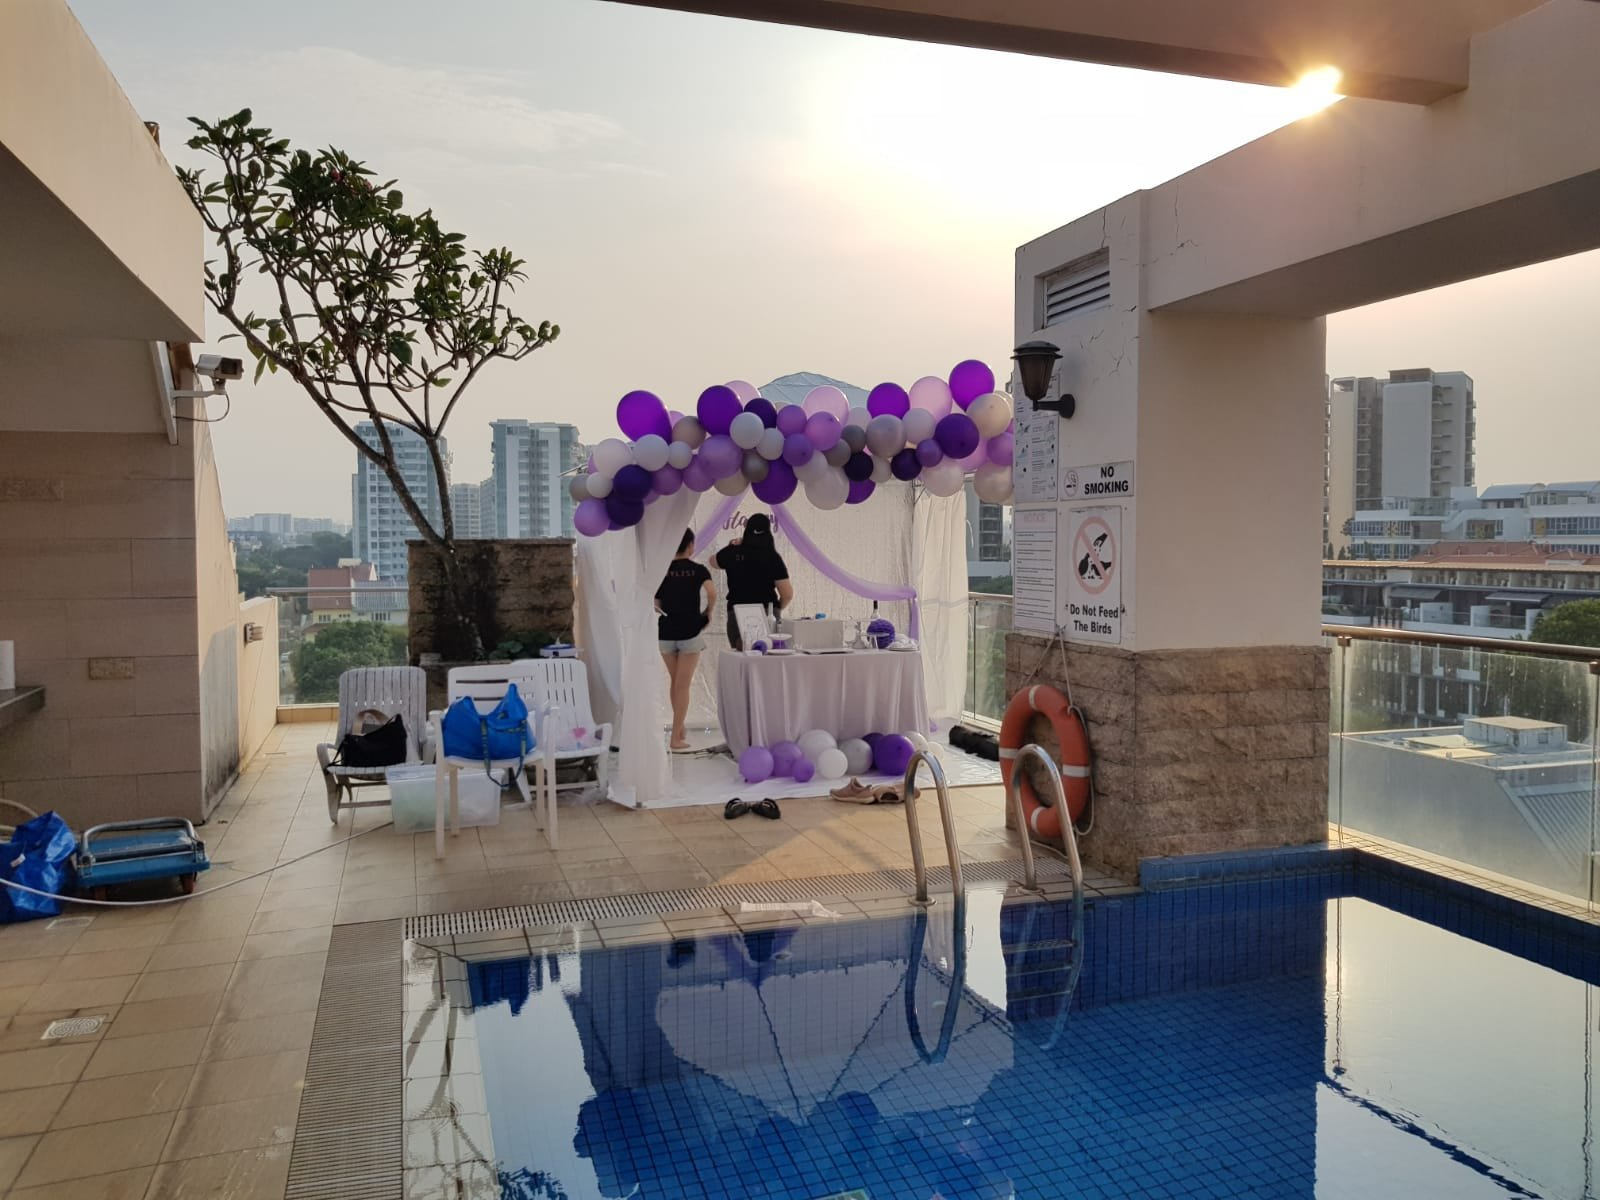 , Organic Balloon Garland For Gazebo Decorations!, Singapore Balloon Decoration Services - Balloon Workshop and Balloon Sculpting